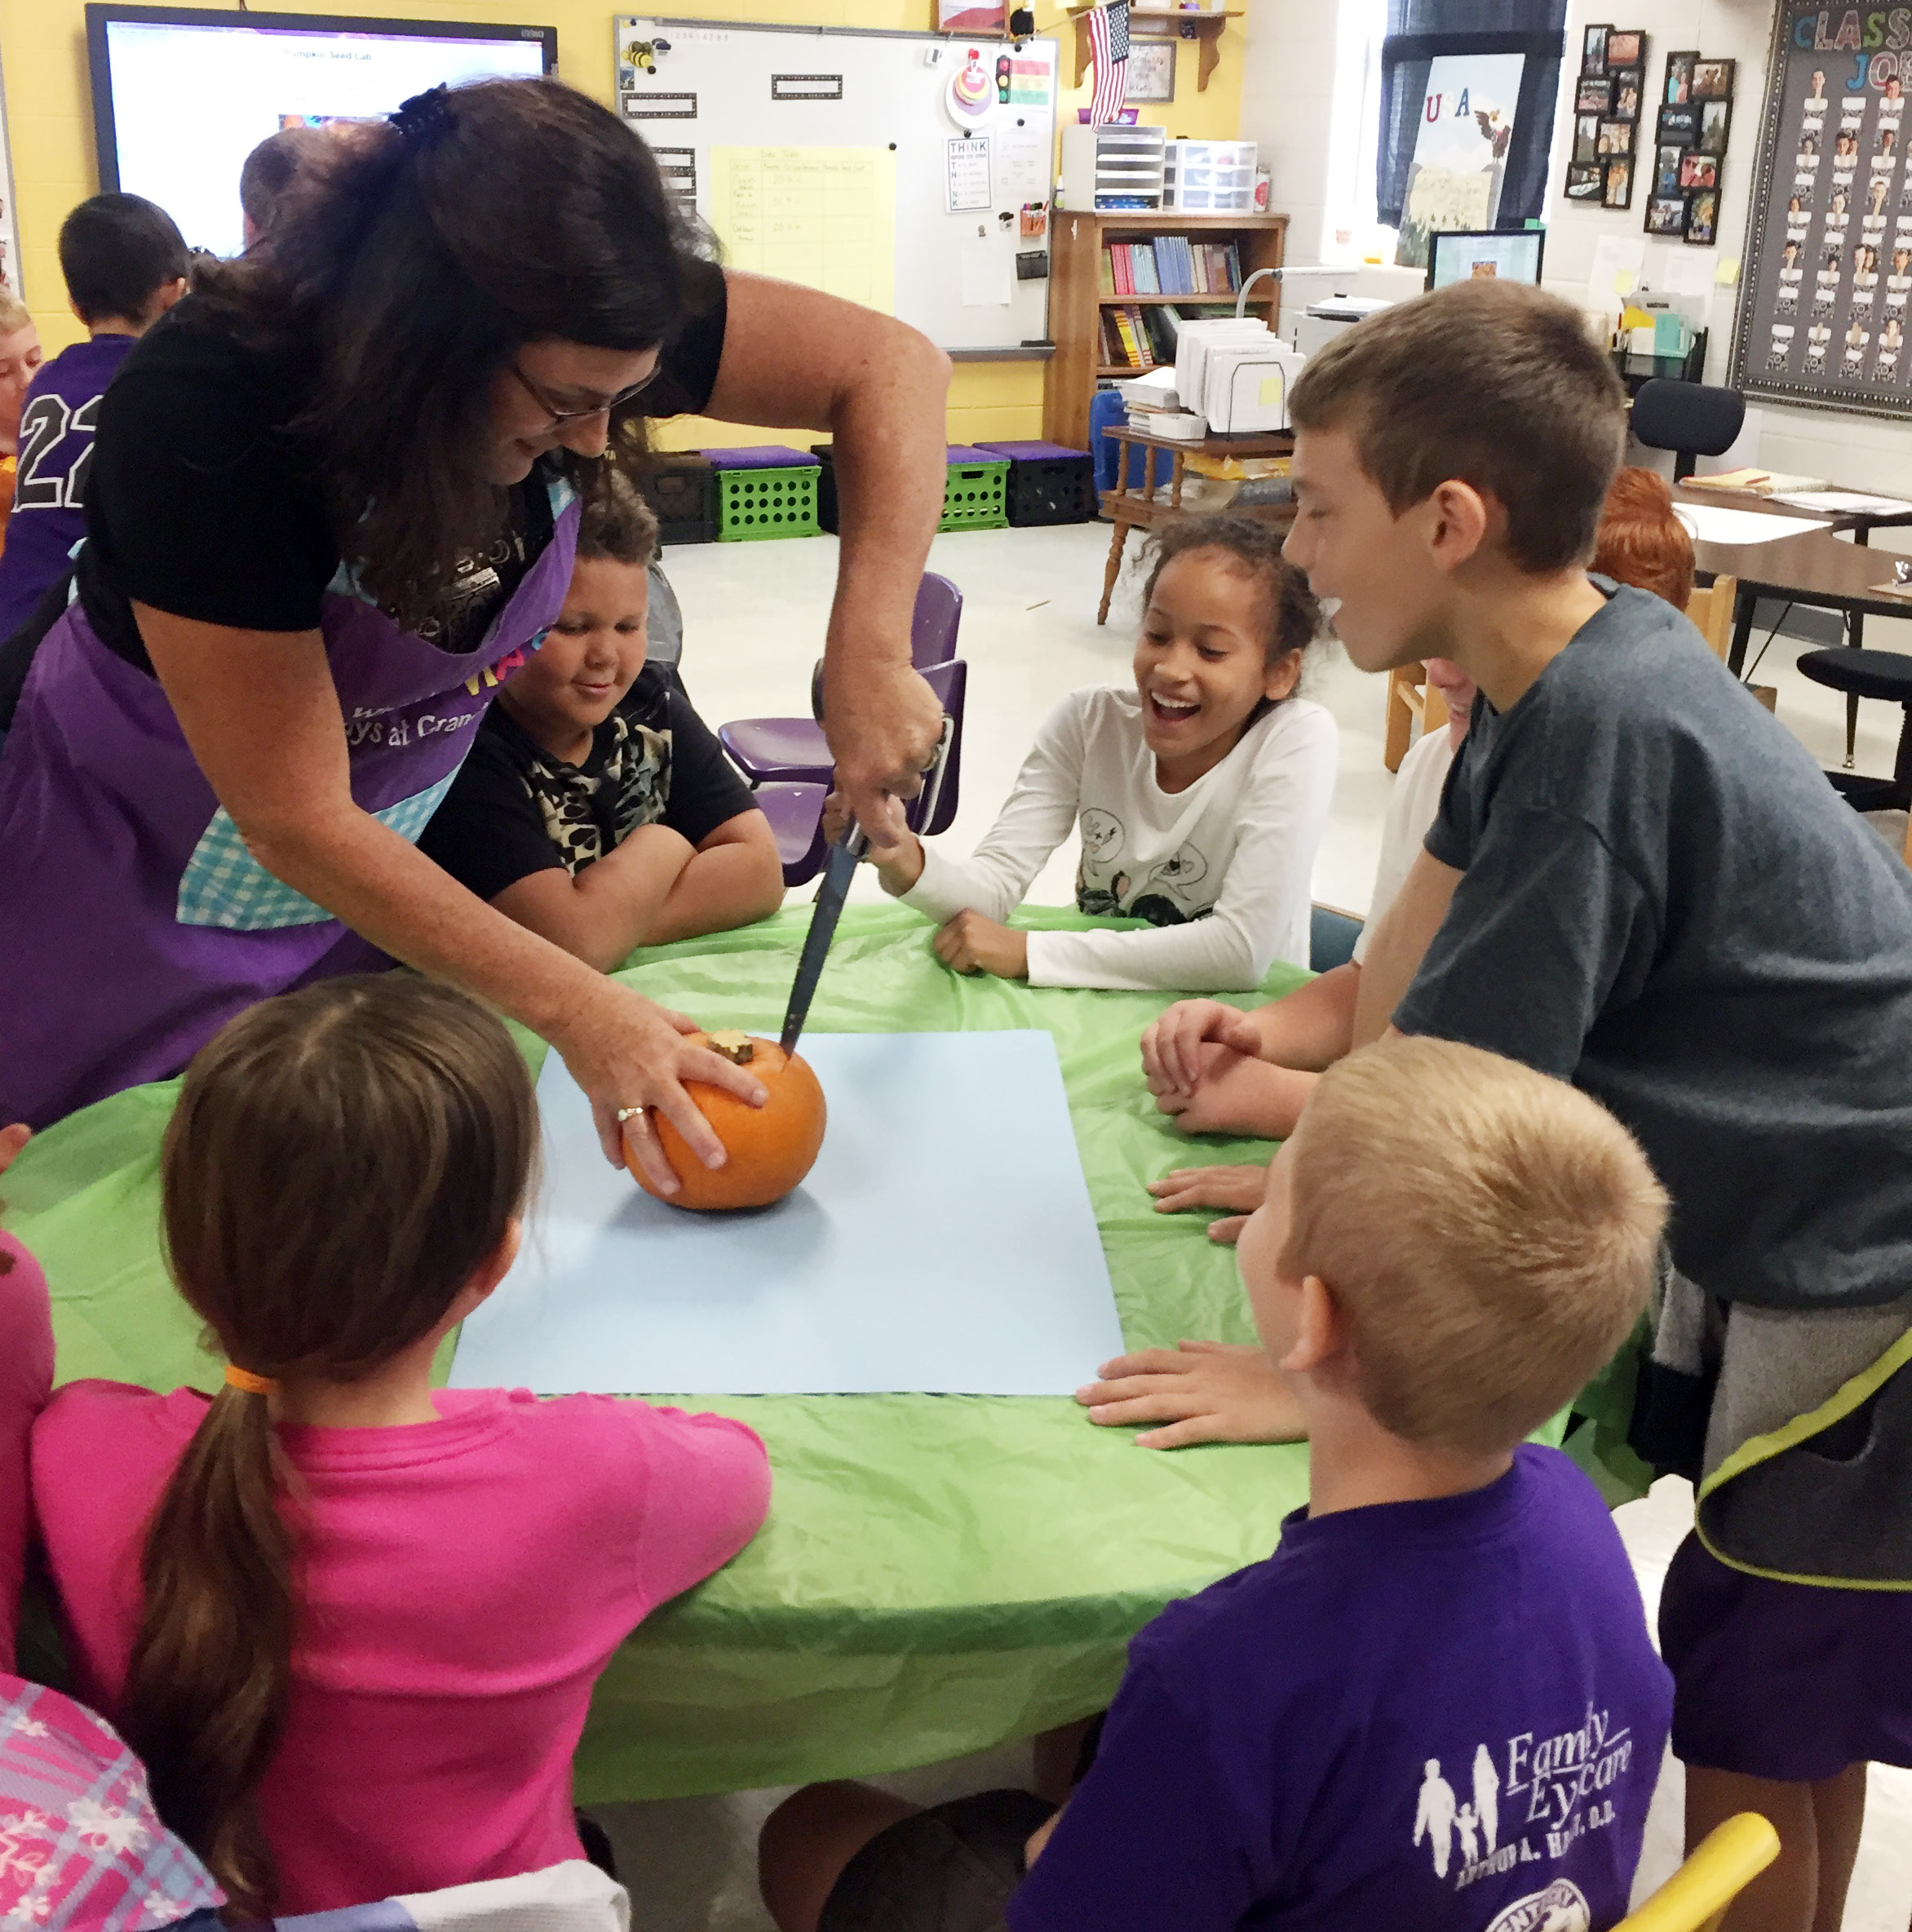 CES third-grade teacher Patty Haley carves a pumpkin for her students.